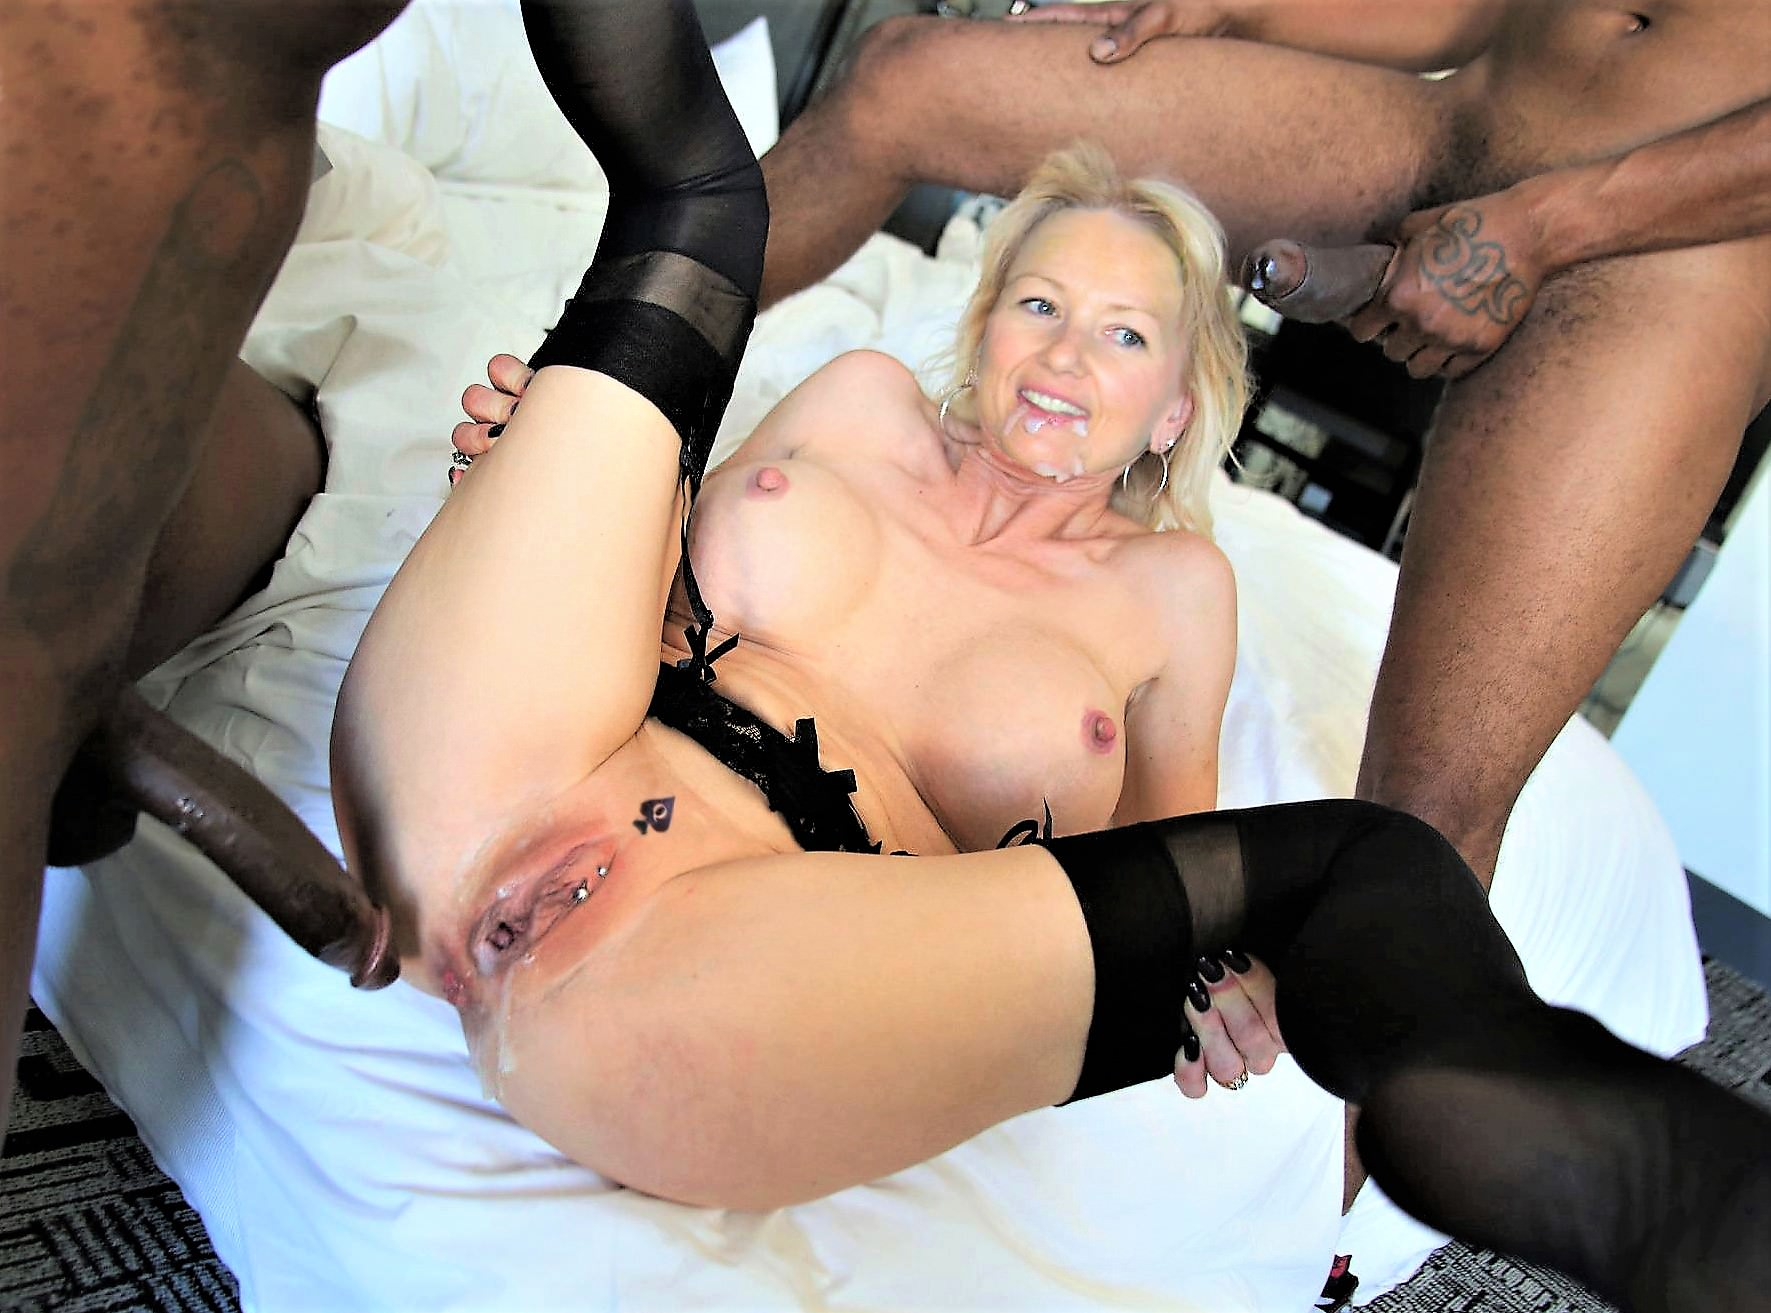 Free gang bang mature pictures collection